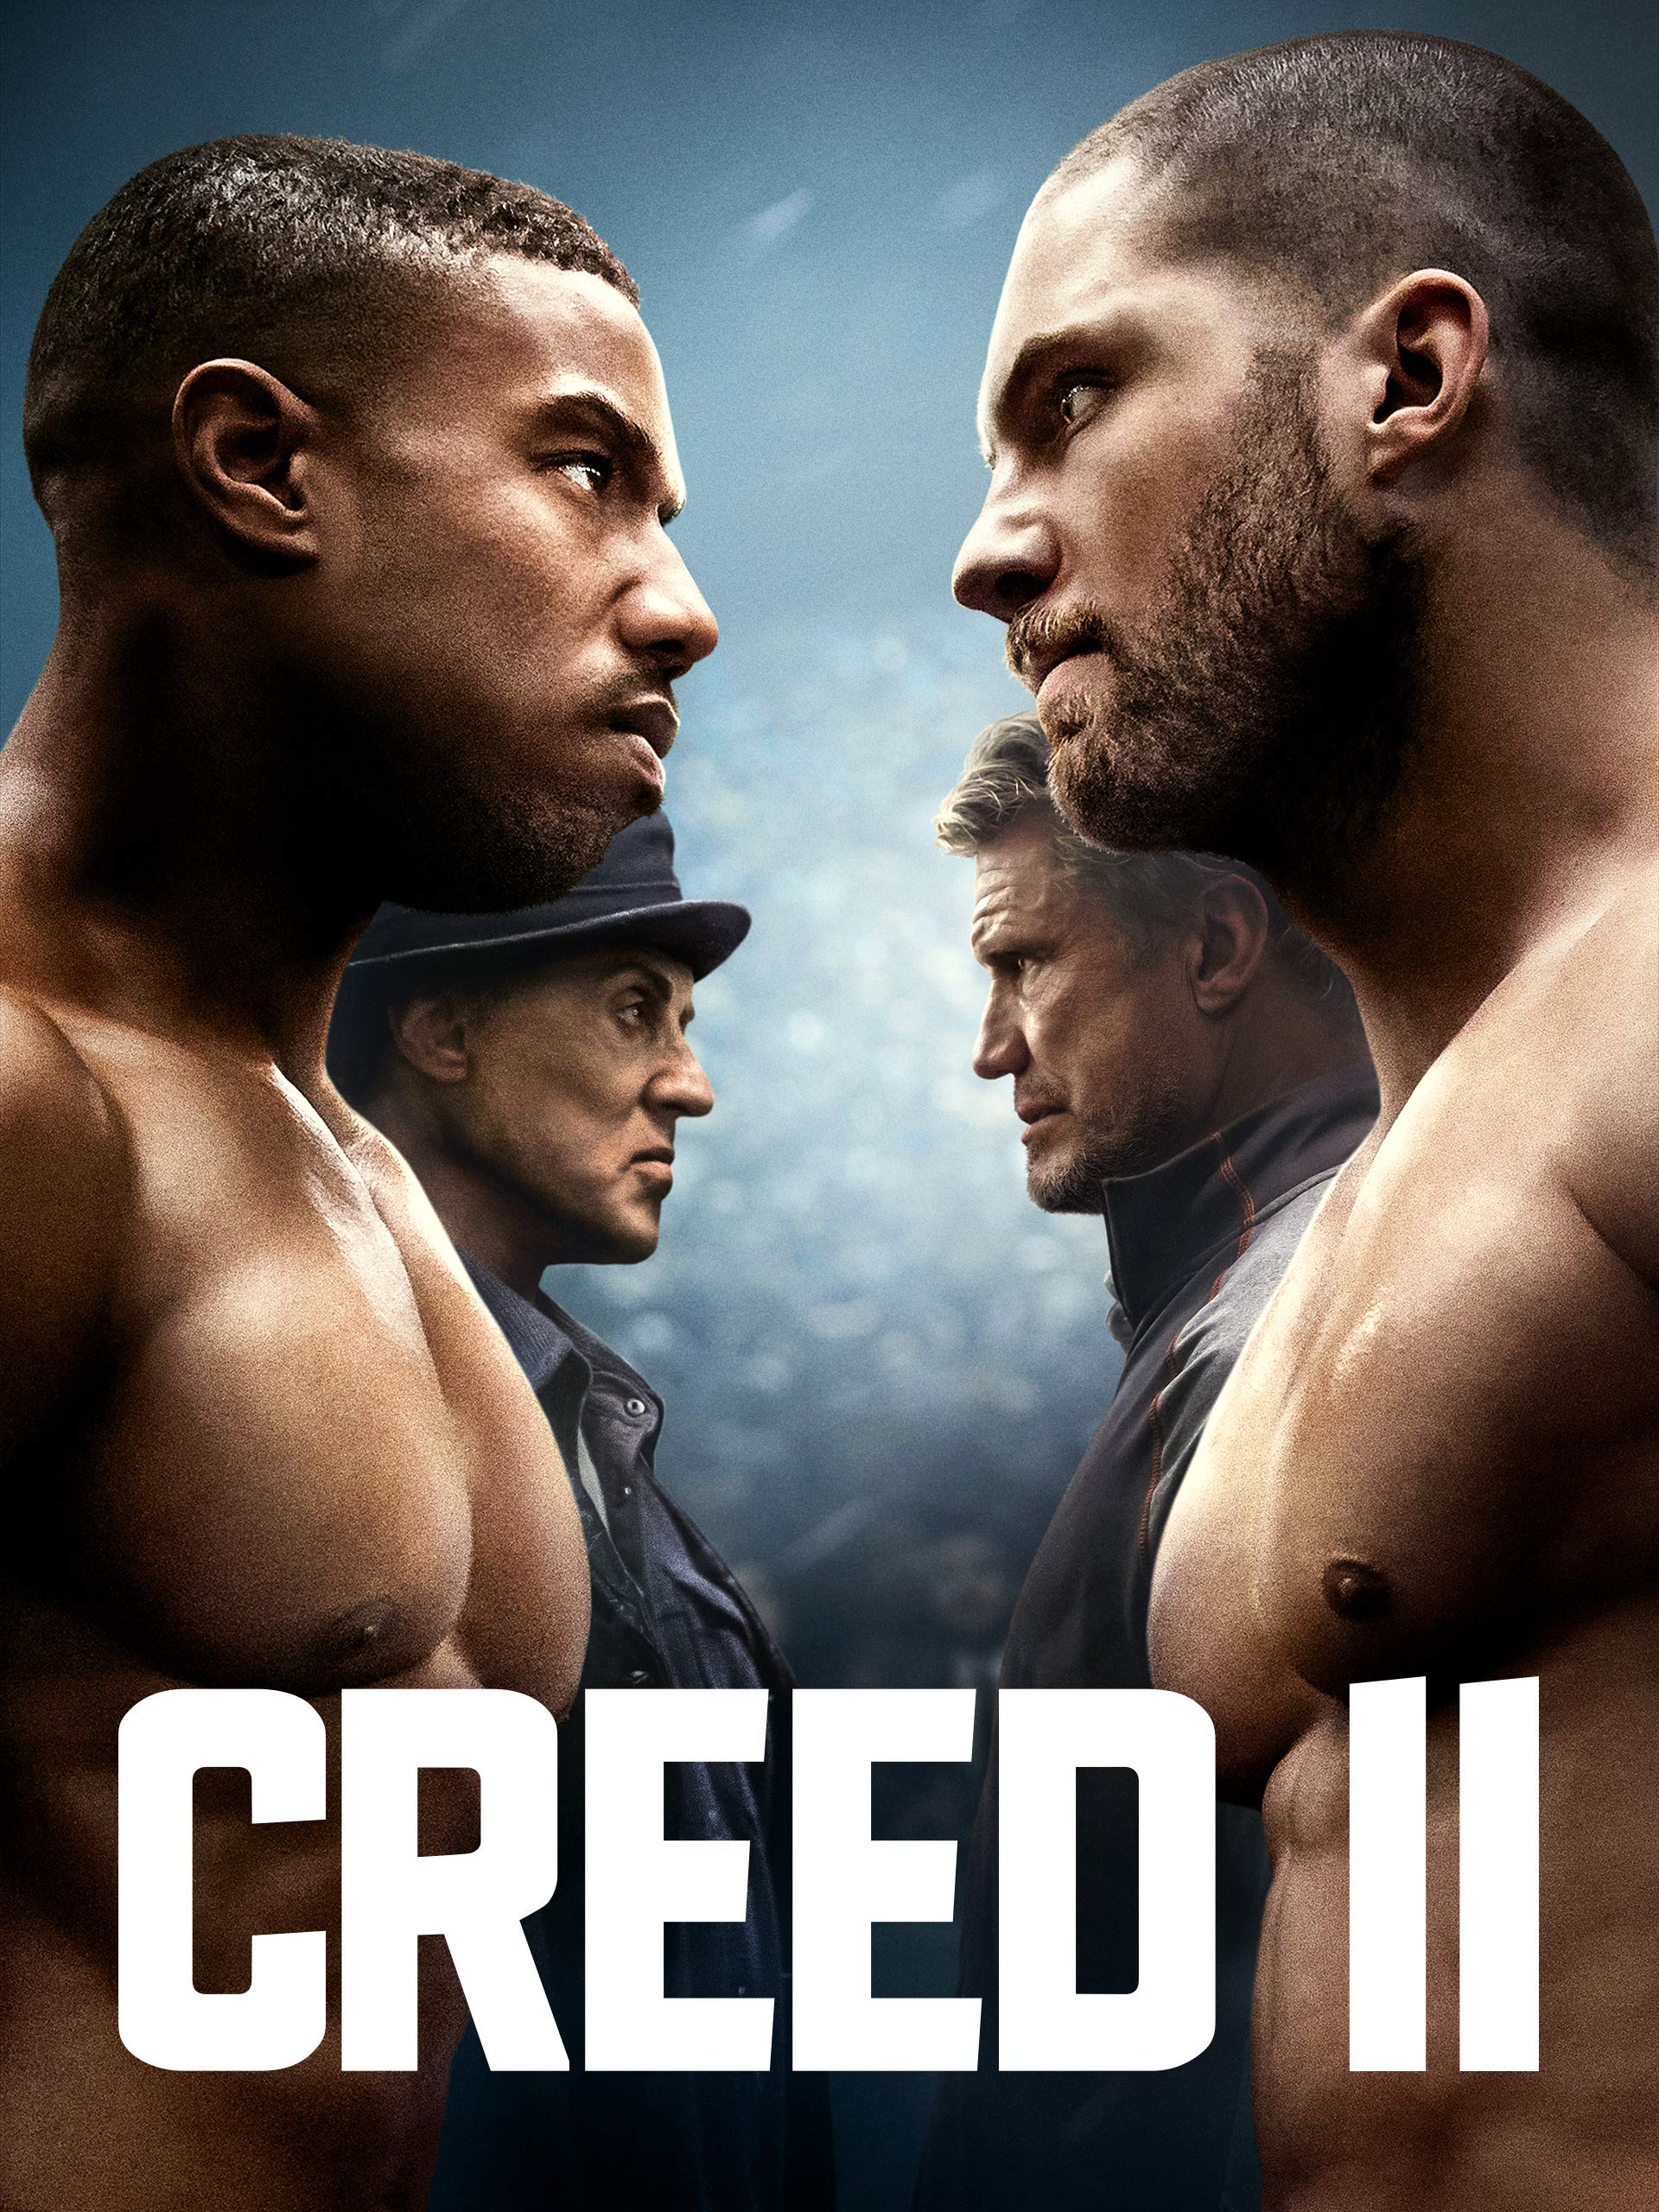 Post -- Creed 2 -- 25 de Enero de 2019 917v37CurWL._RI_